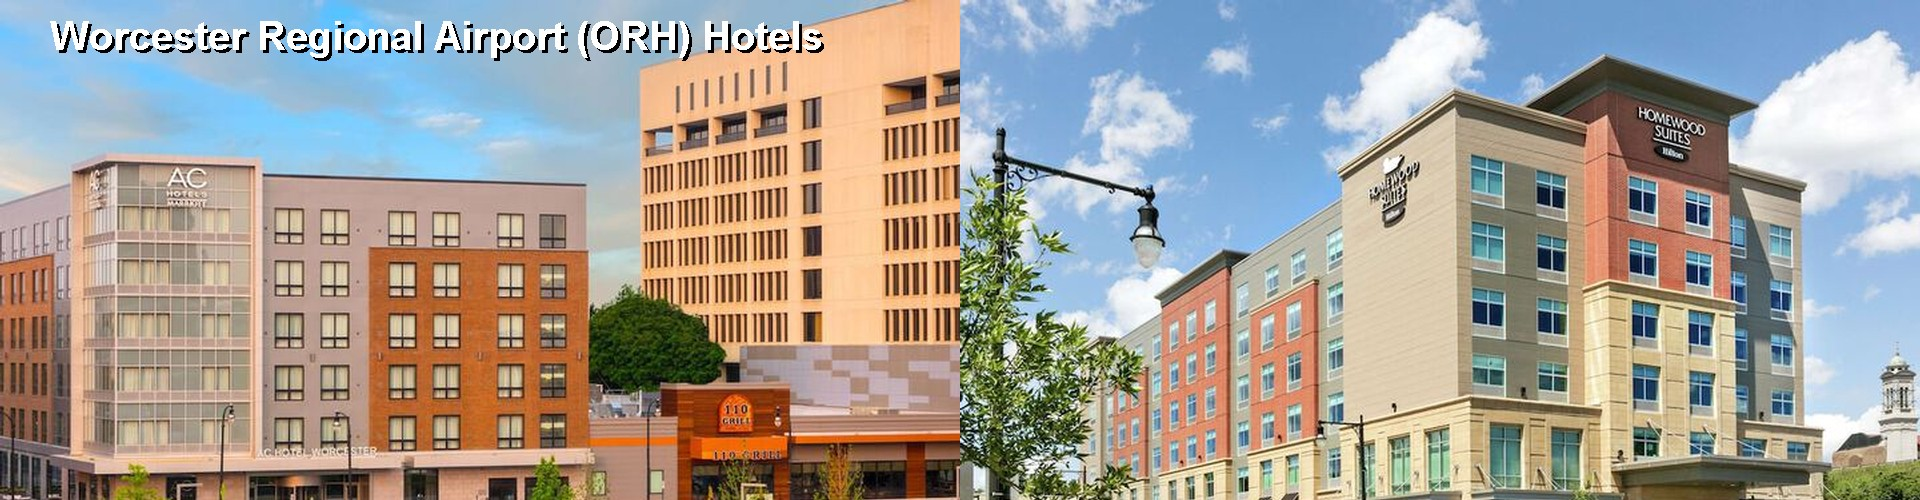 5 Best Hotels near Worcester Regional Airport (ORH)